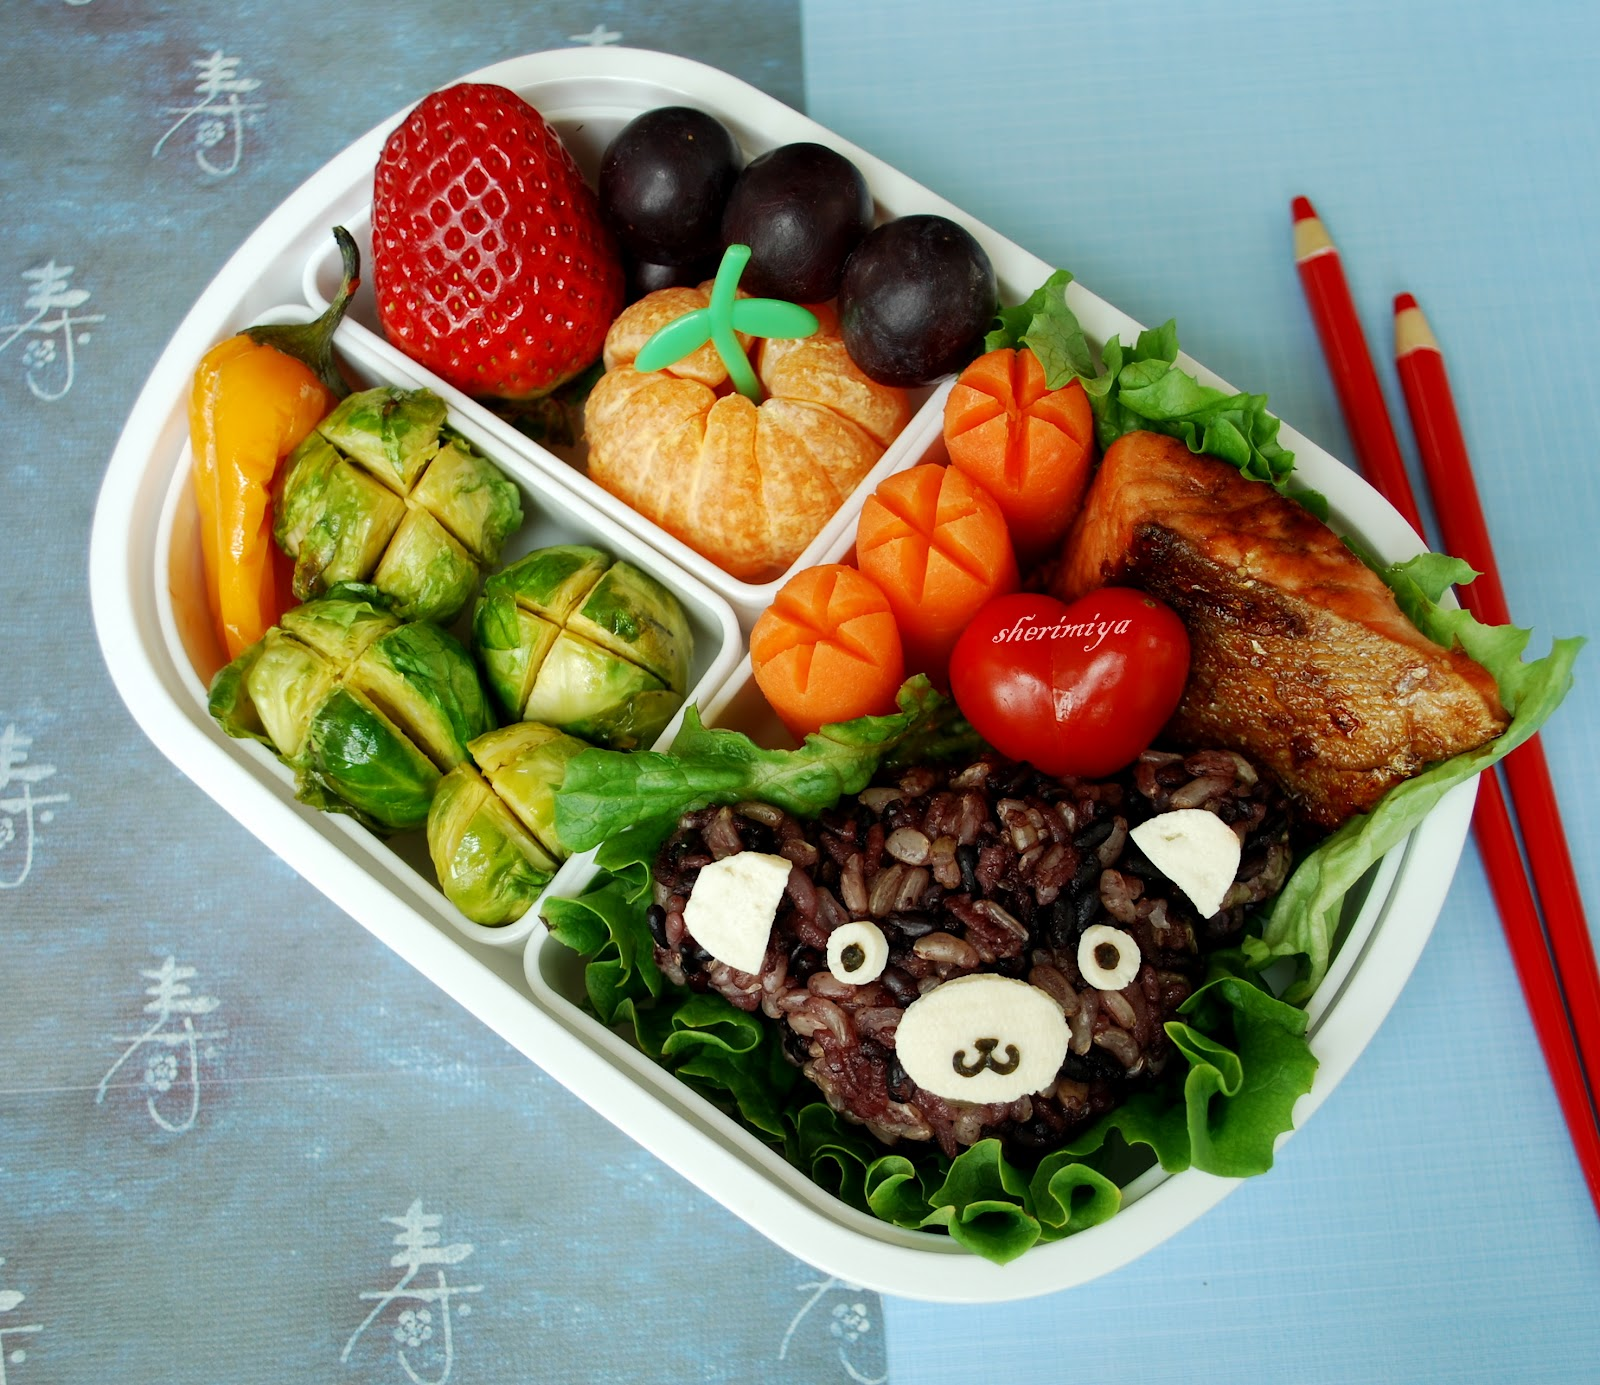 waste free lunches what 39 s a bento box. Black Bedroom Furniture Sets. Home Design Ideas